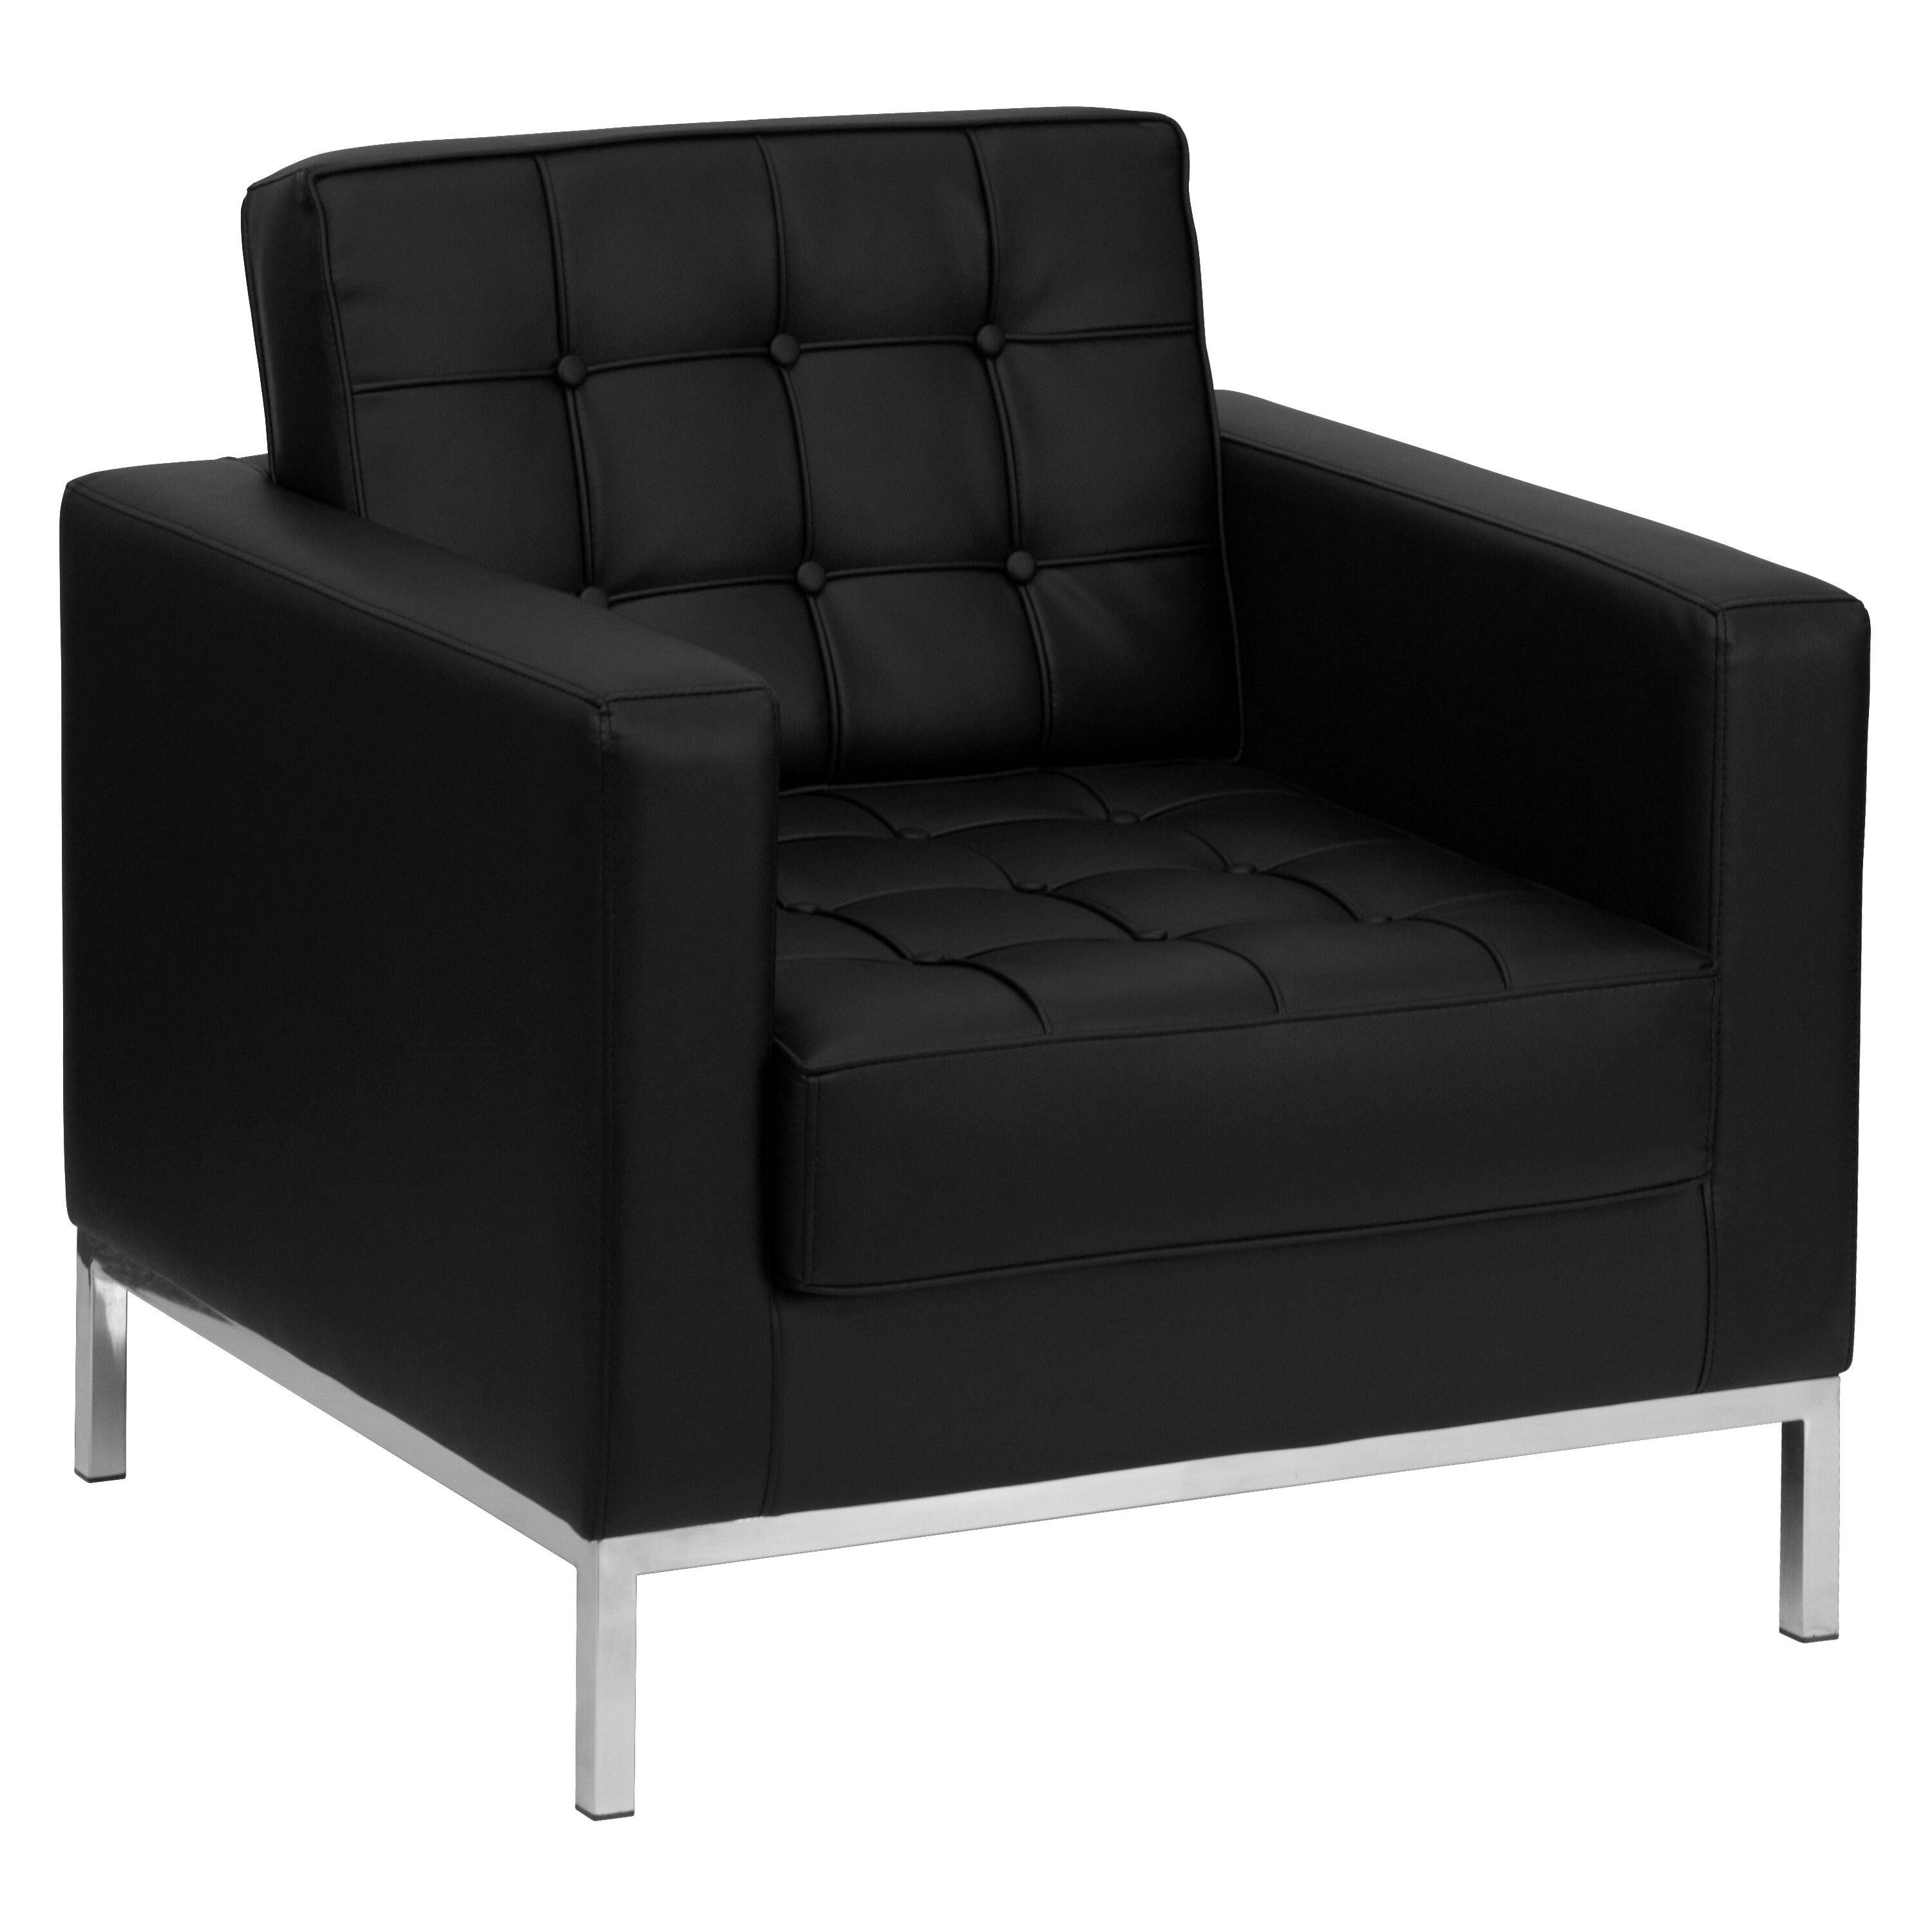 hercules lacey series black leather chair with stainless steel frame